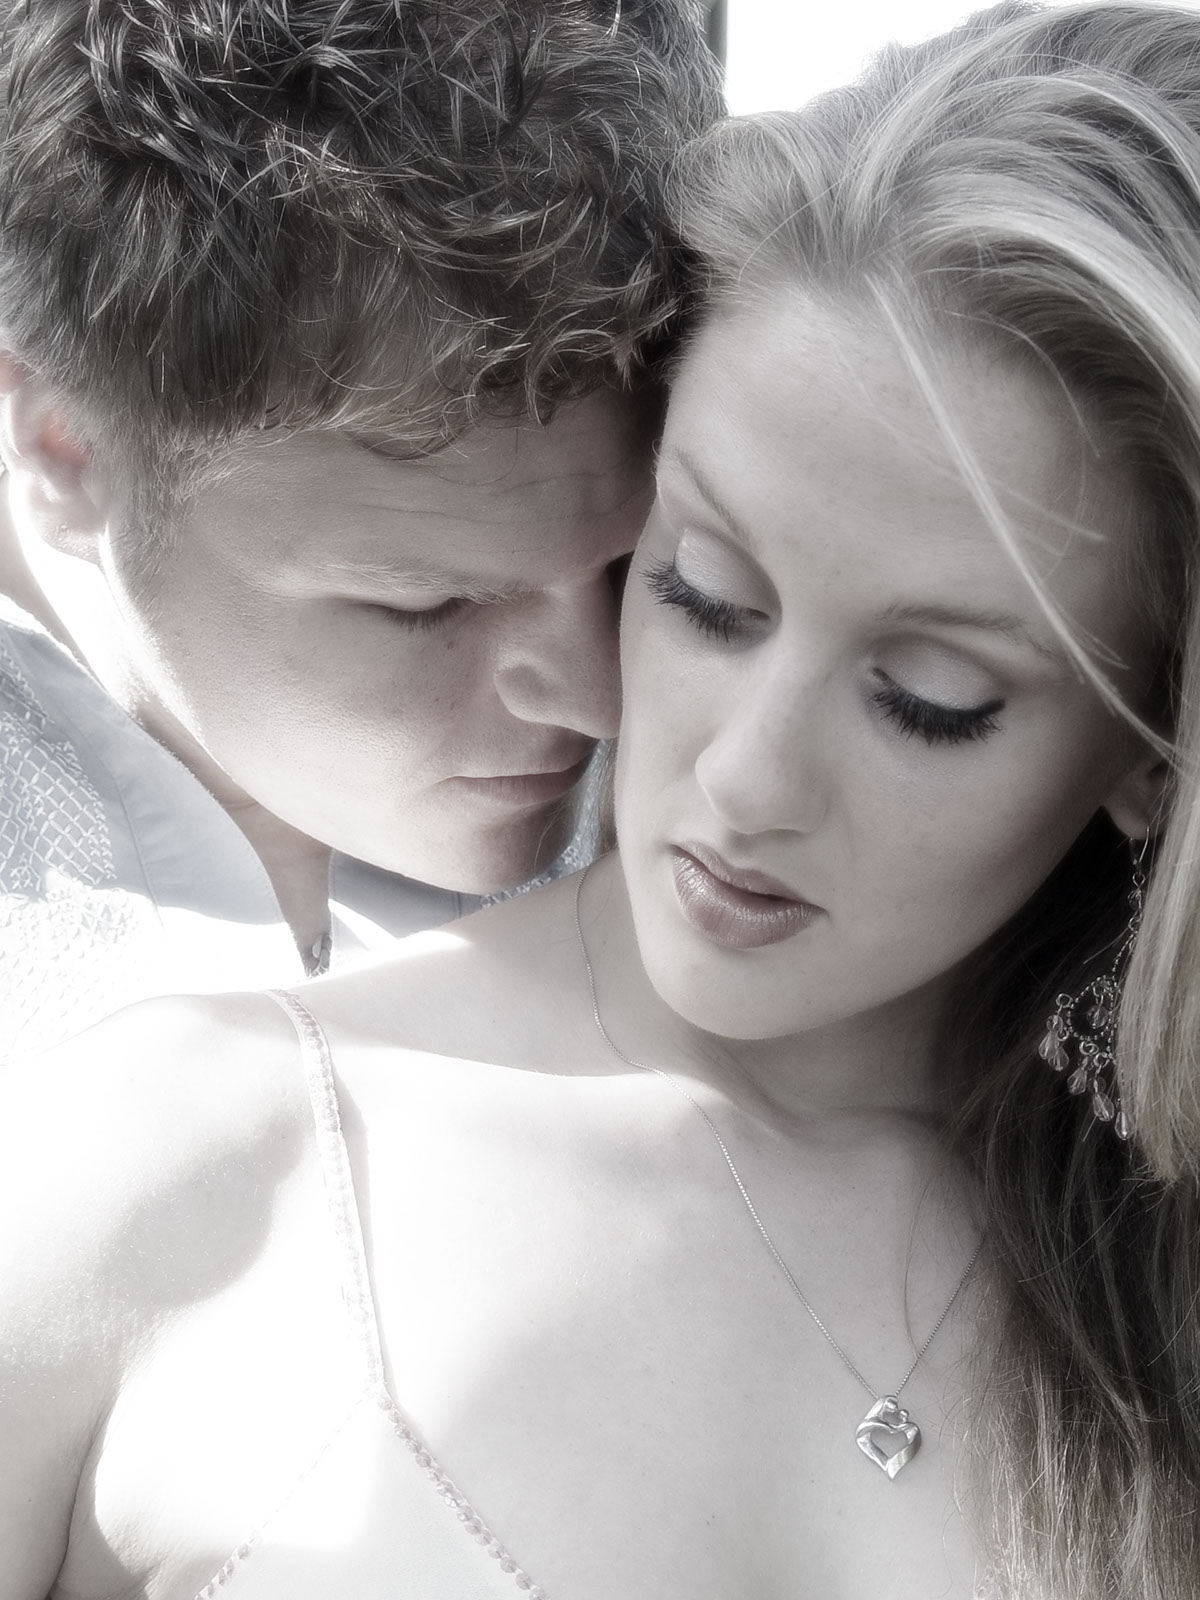 the gallery for gt romantic neck kisses